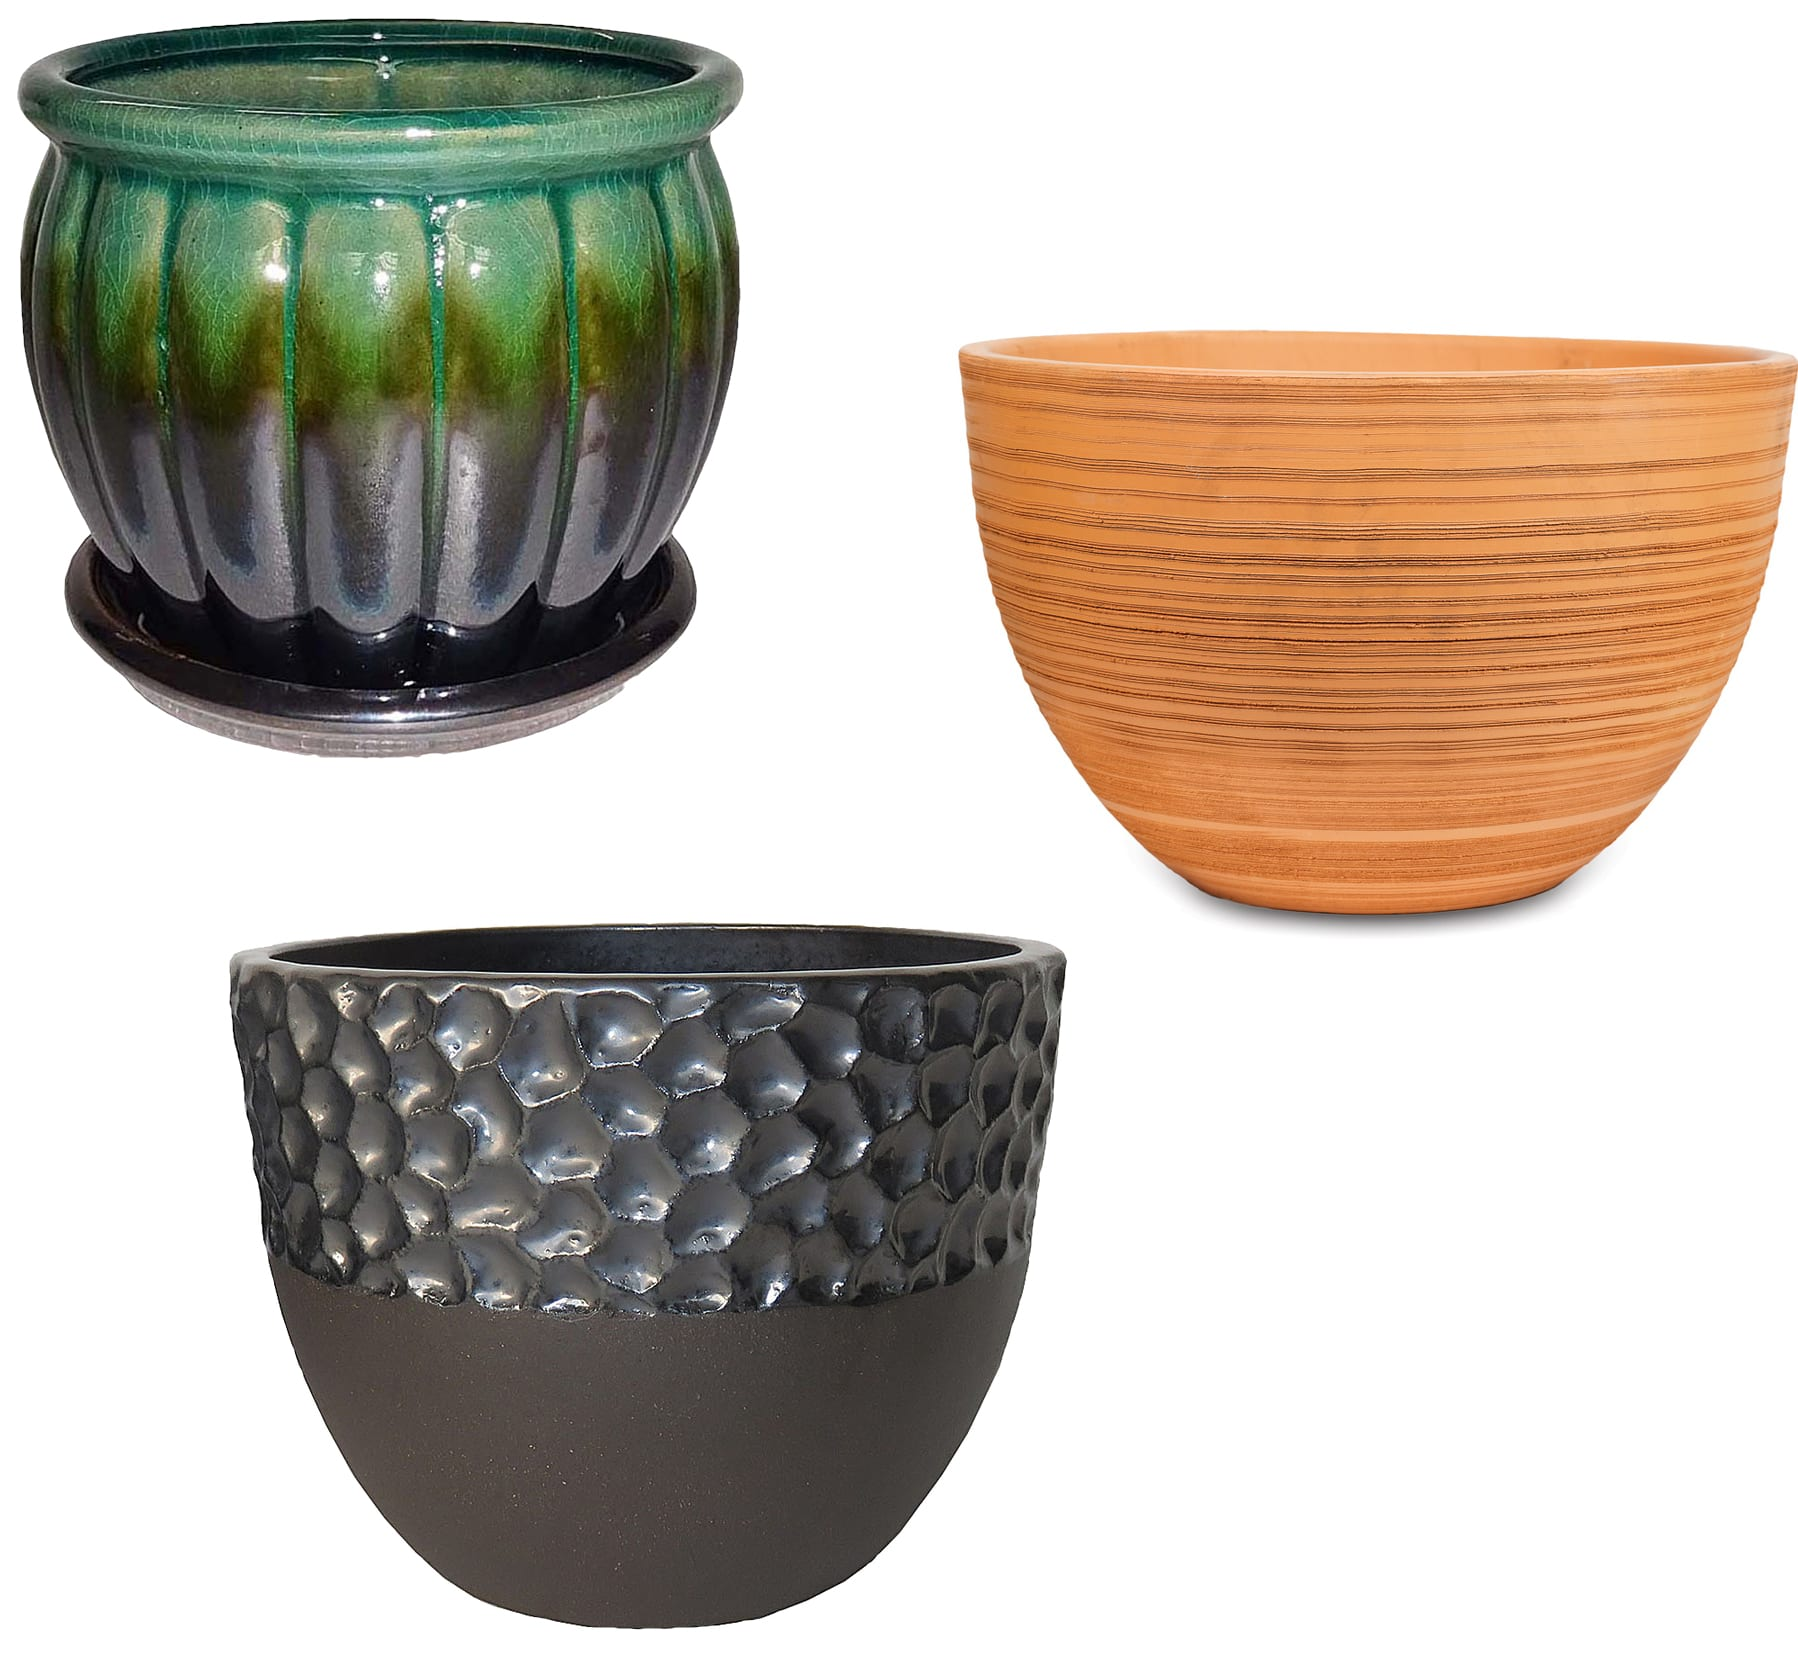 Clearance Pots and Planters at Lowe's from $2